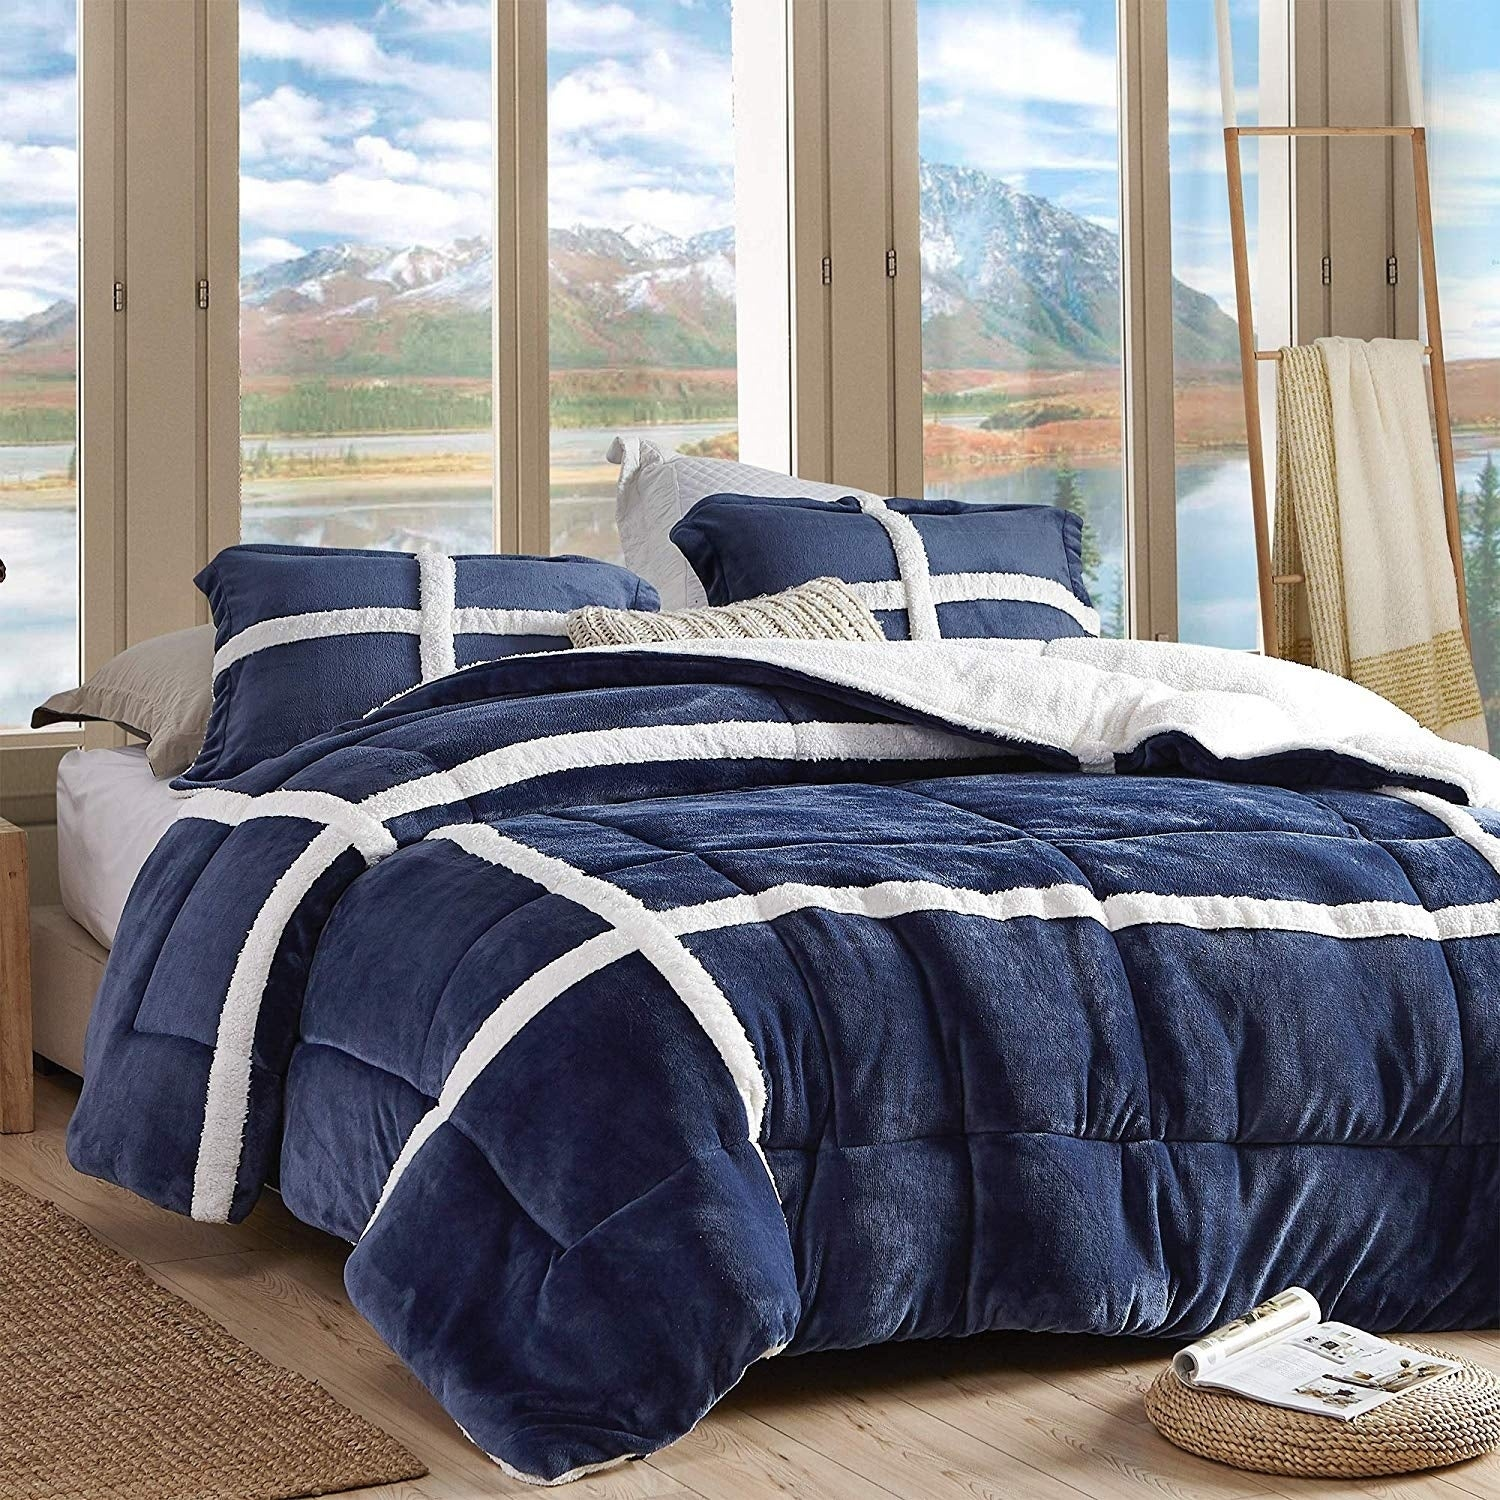 Coma Inducer Oversized Comforter Wilderness Navy On Sale Overstock 29804794